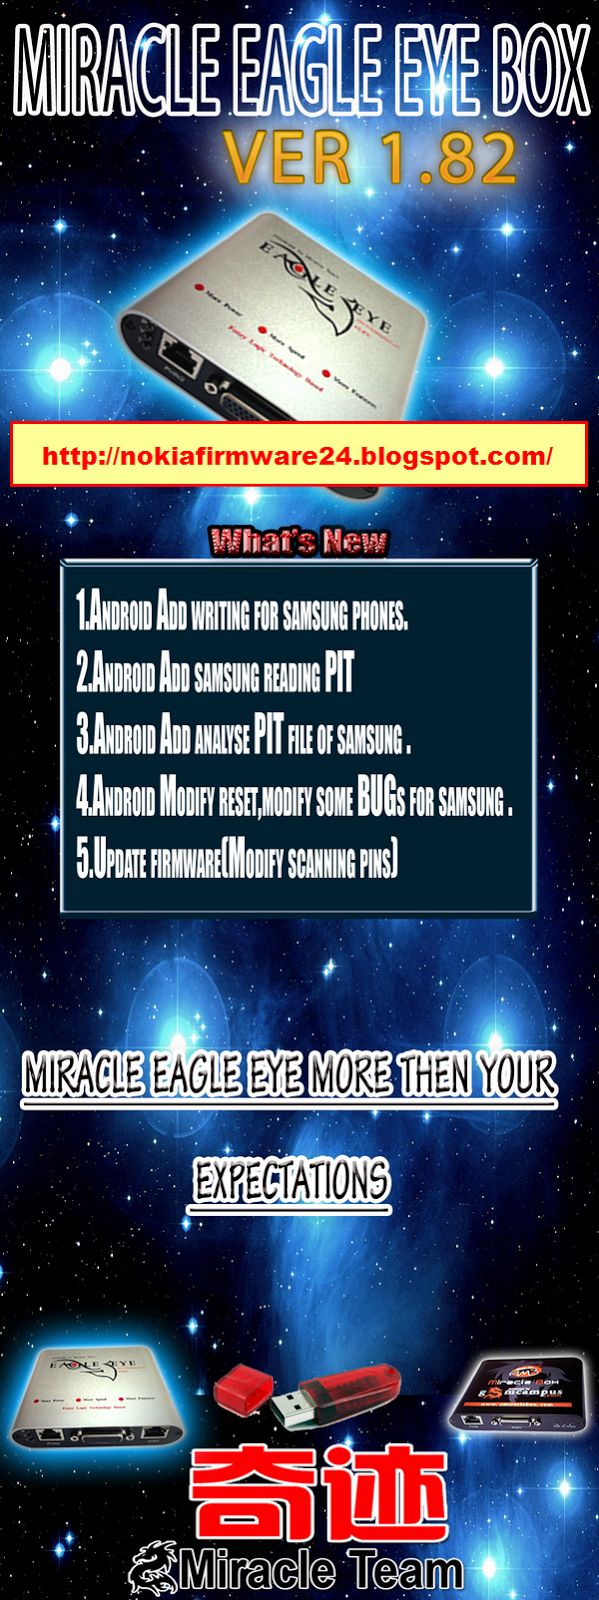 Miracle eagle eye V1.82